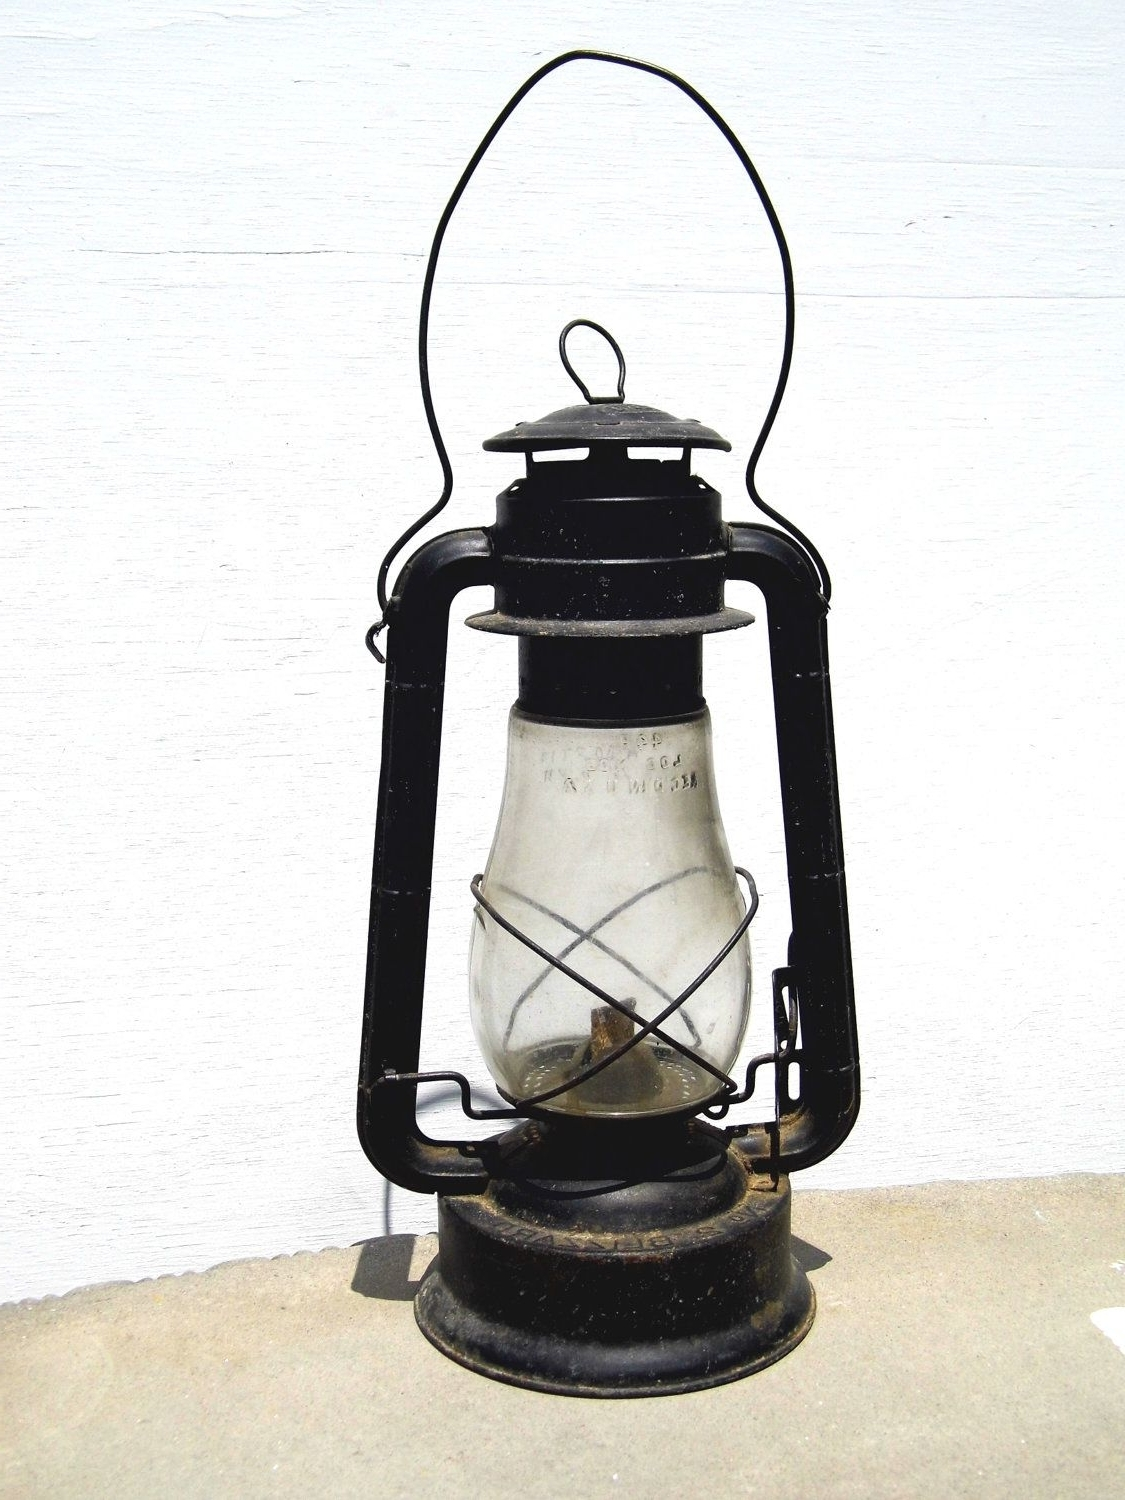 2018 Dietz Lantern, Vintage Lantern, Railroad Lantern, Antique Lantern Intended For Outdoor Railroad Lanterns (View 5 of 20)